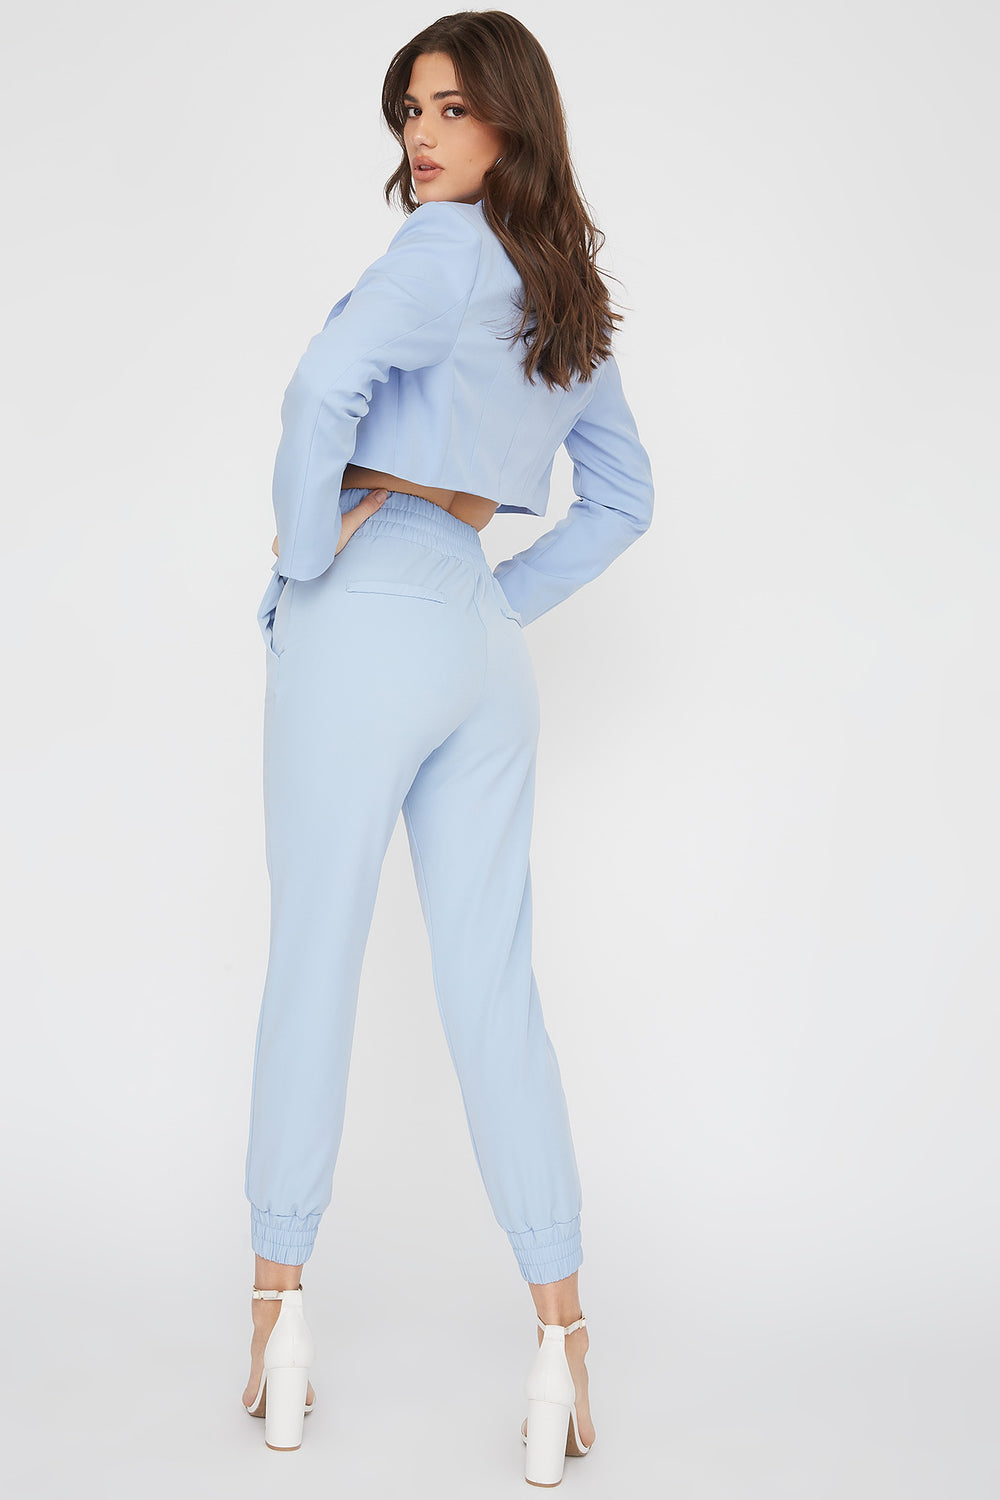 Pull-On Drawstring Jogger Light Blue